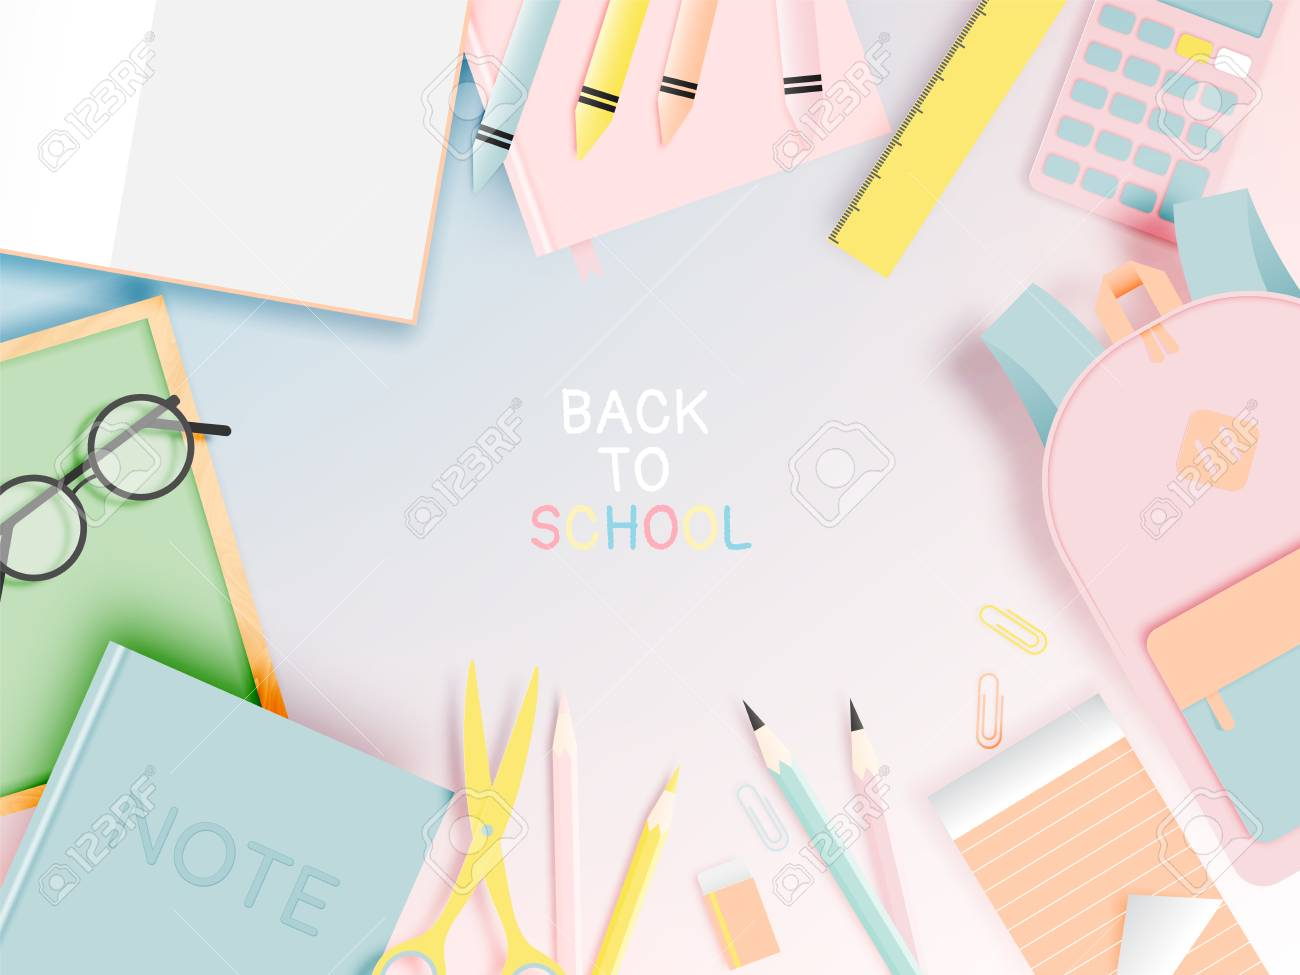 Various stationery for back to school in paper art style with pastel color vector illustration - 101052269